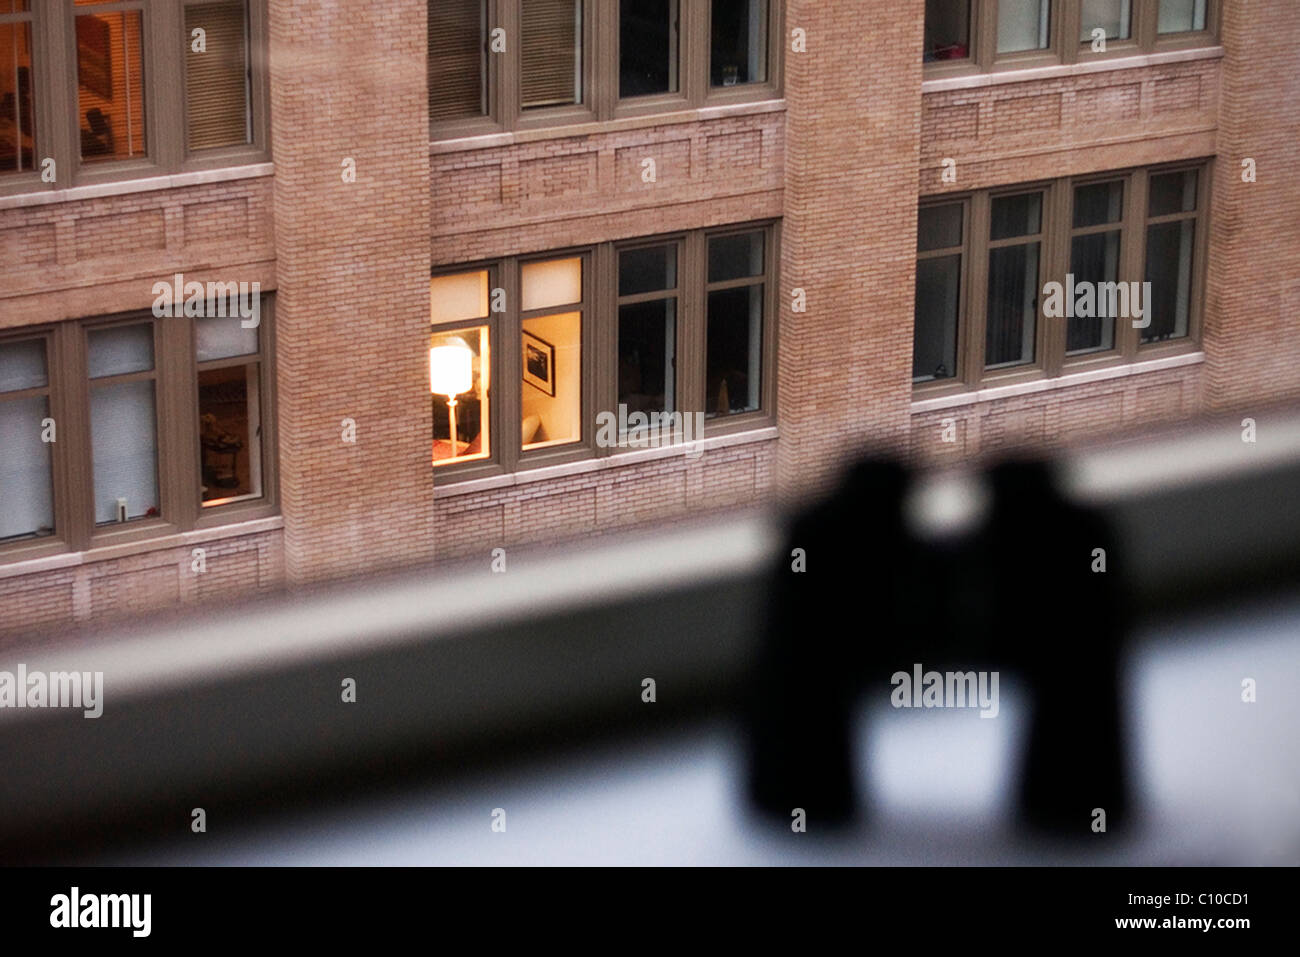 A pair of binoculars sit on a New York City apartment window sill looking out onto another apartment. - Stock Image